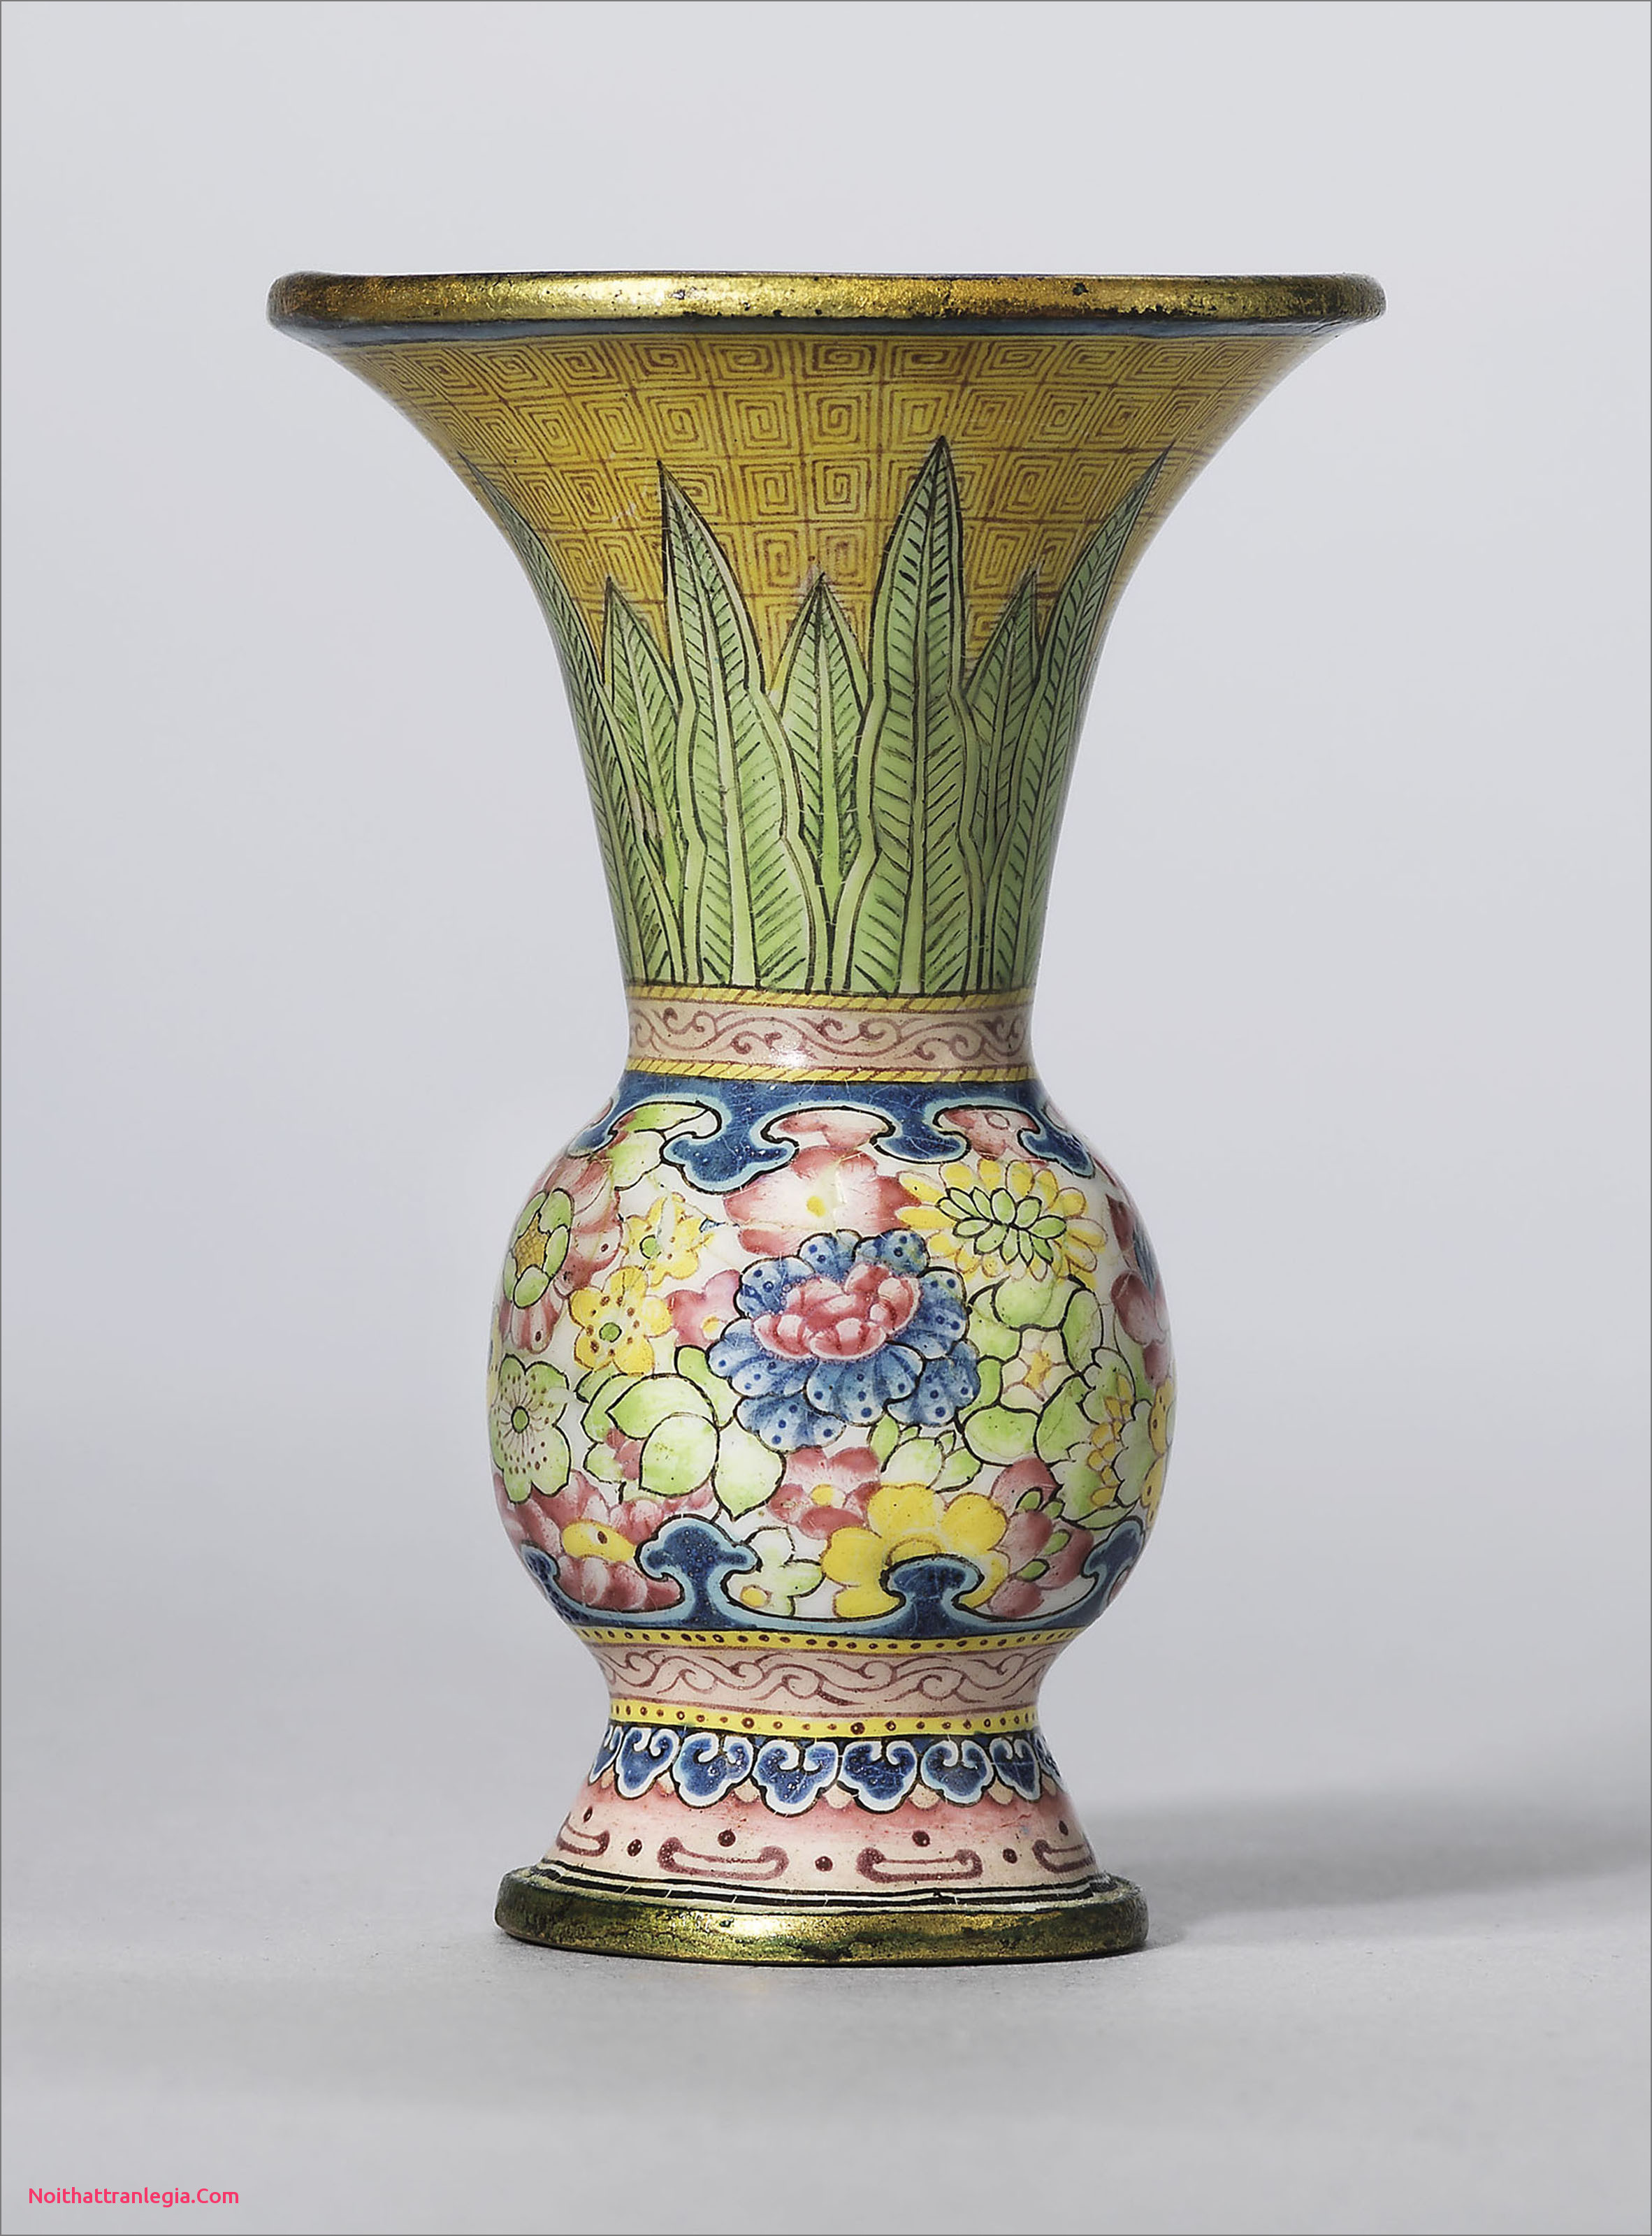 old waterford crystal vase of 20 chinese antique vase noithattranlegia vases design throughout chinese antique vase unique a guide to the symbolism of flowers on chinese ceramics of chinese antique vase